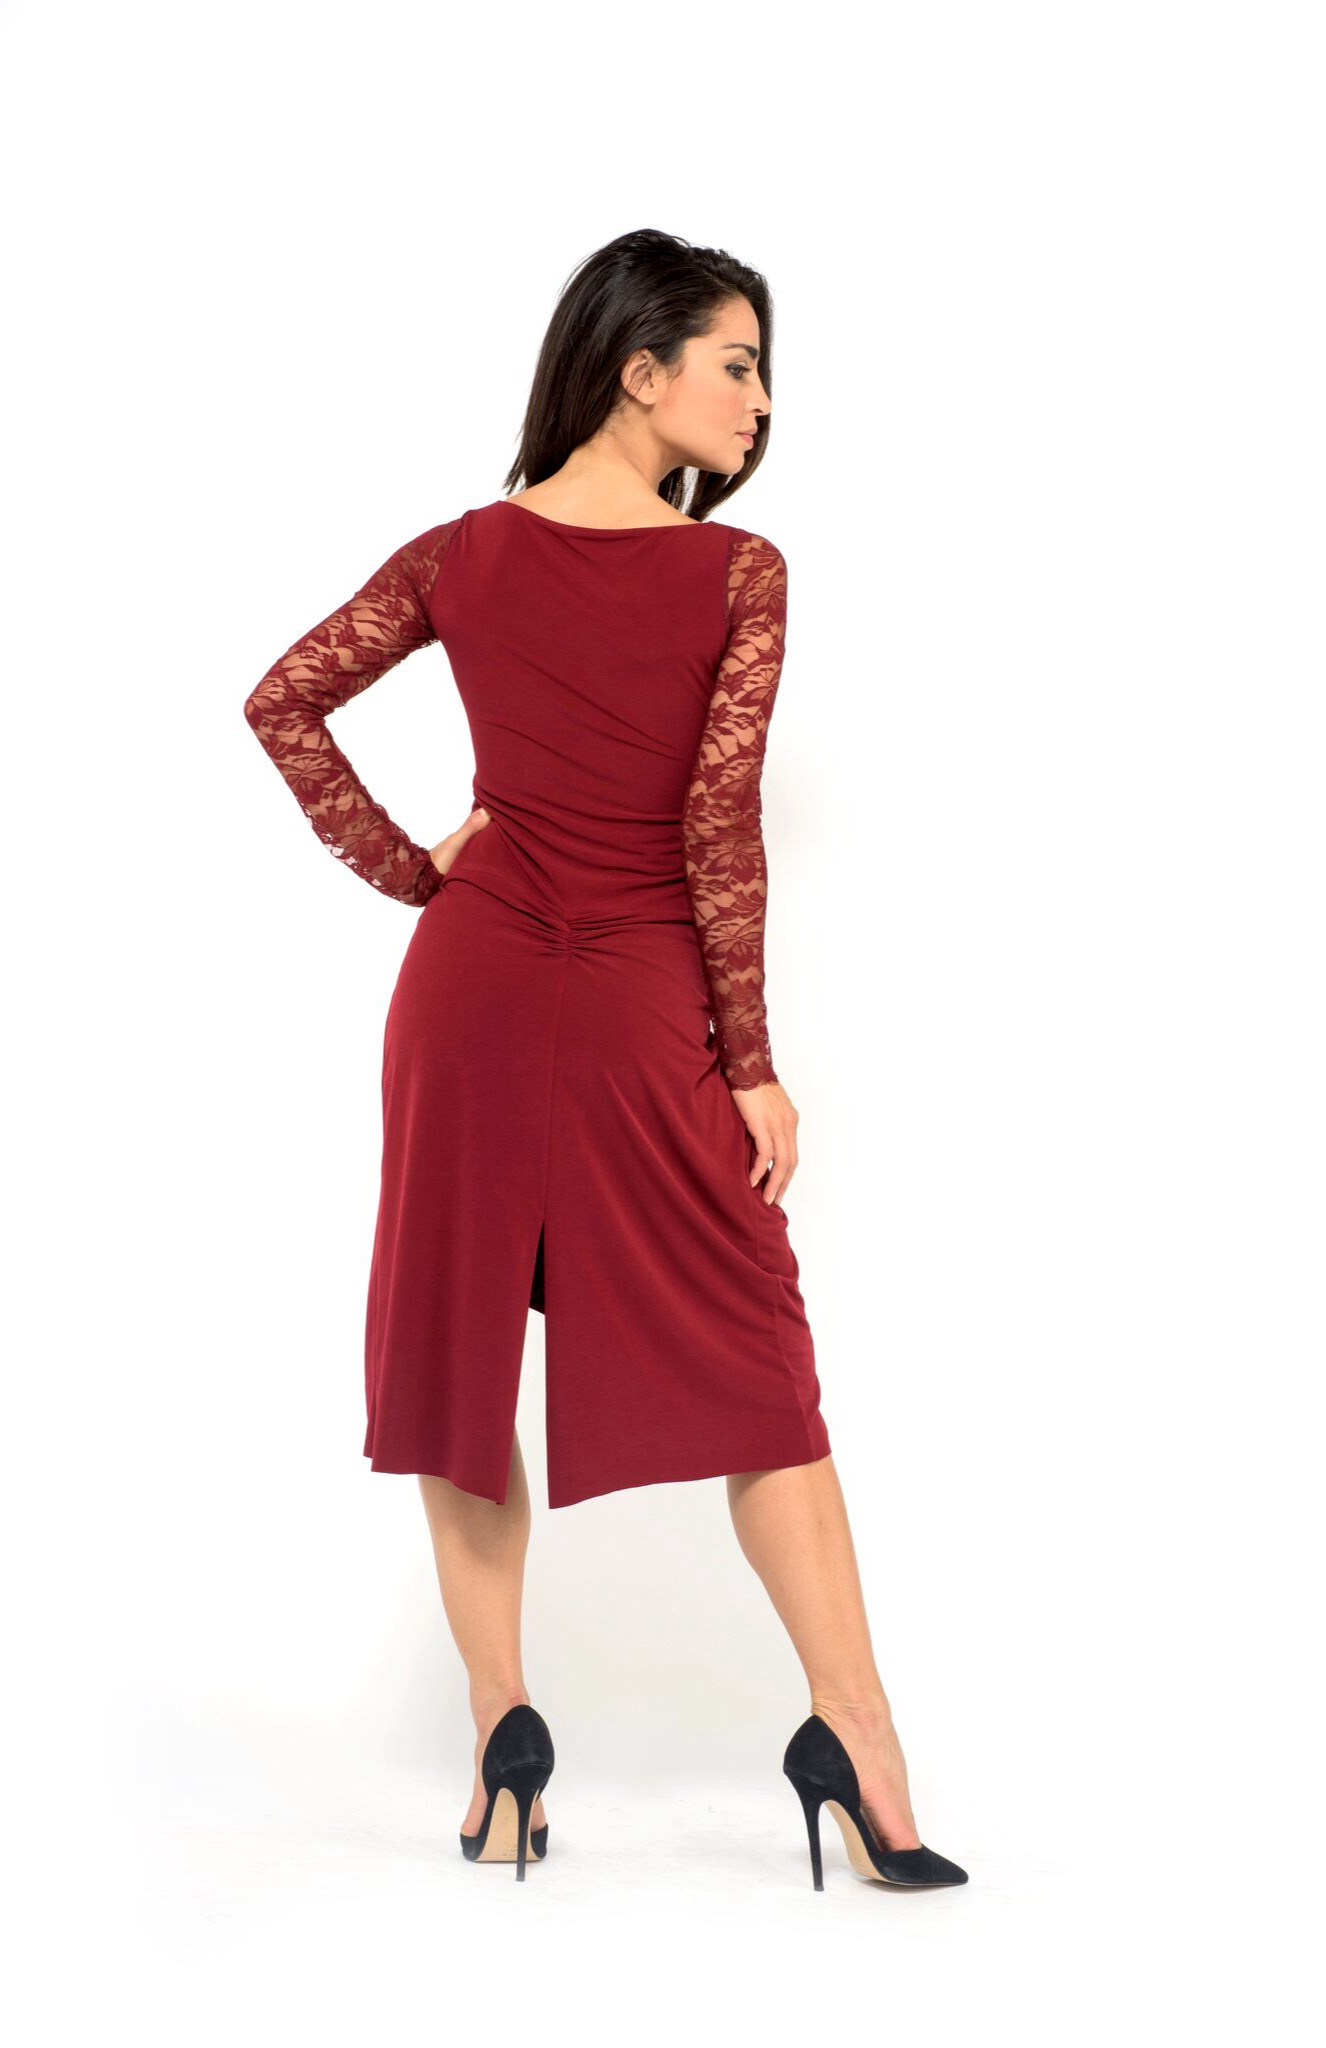 c3ede8cd0428f The Federica Dress - The London Tango Boutique tango dress sleeves